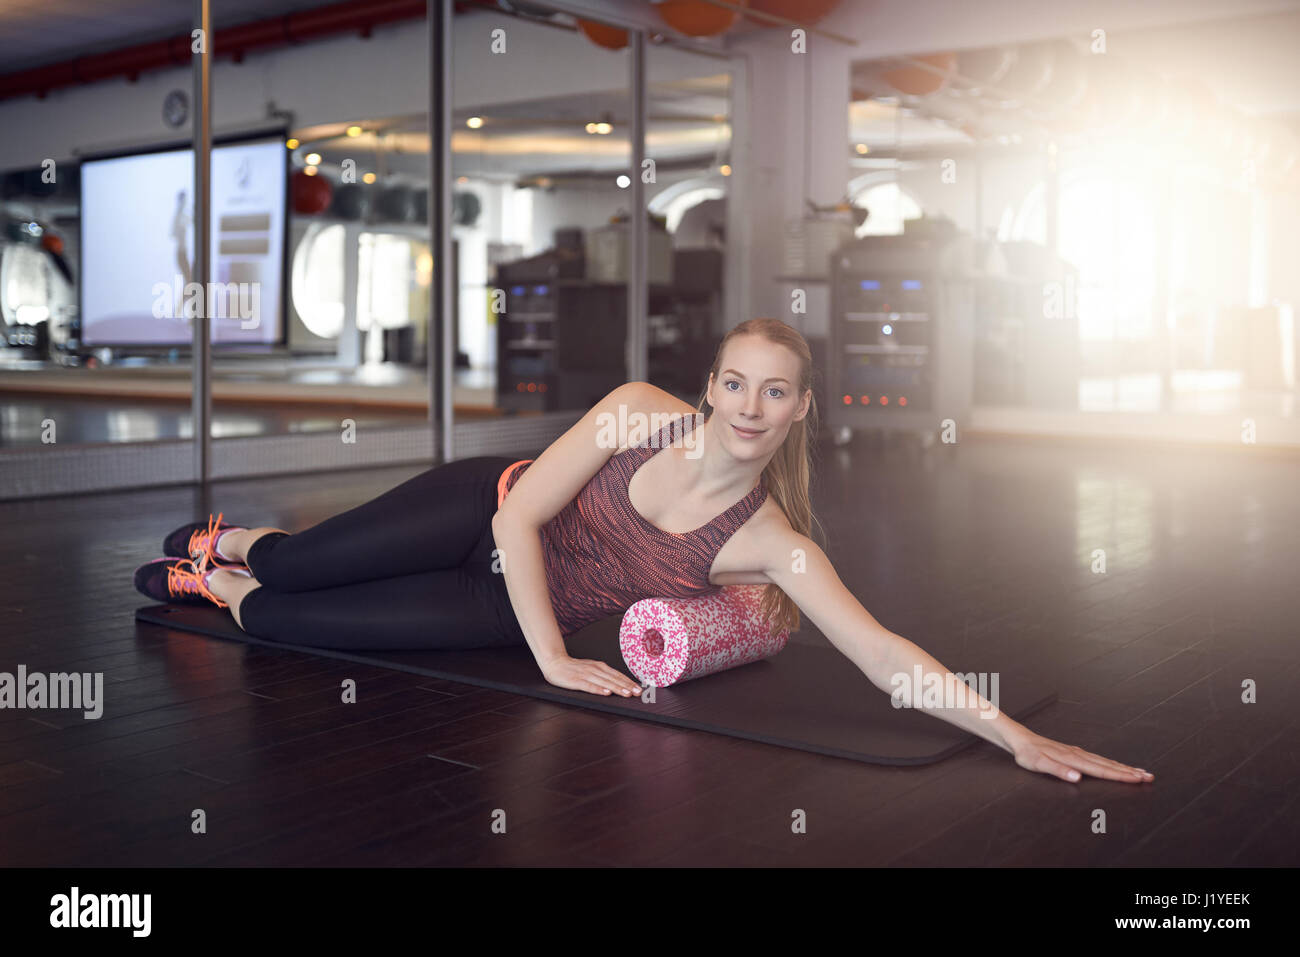 Woman in sleeveless shirt and black leggings in gym doing exercise with foam or fascia roll and looking at camera - Stock Image